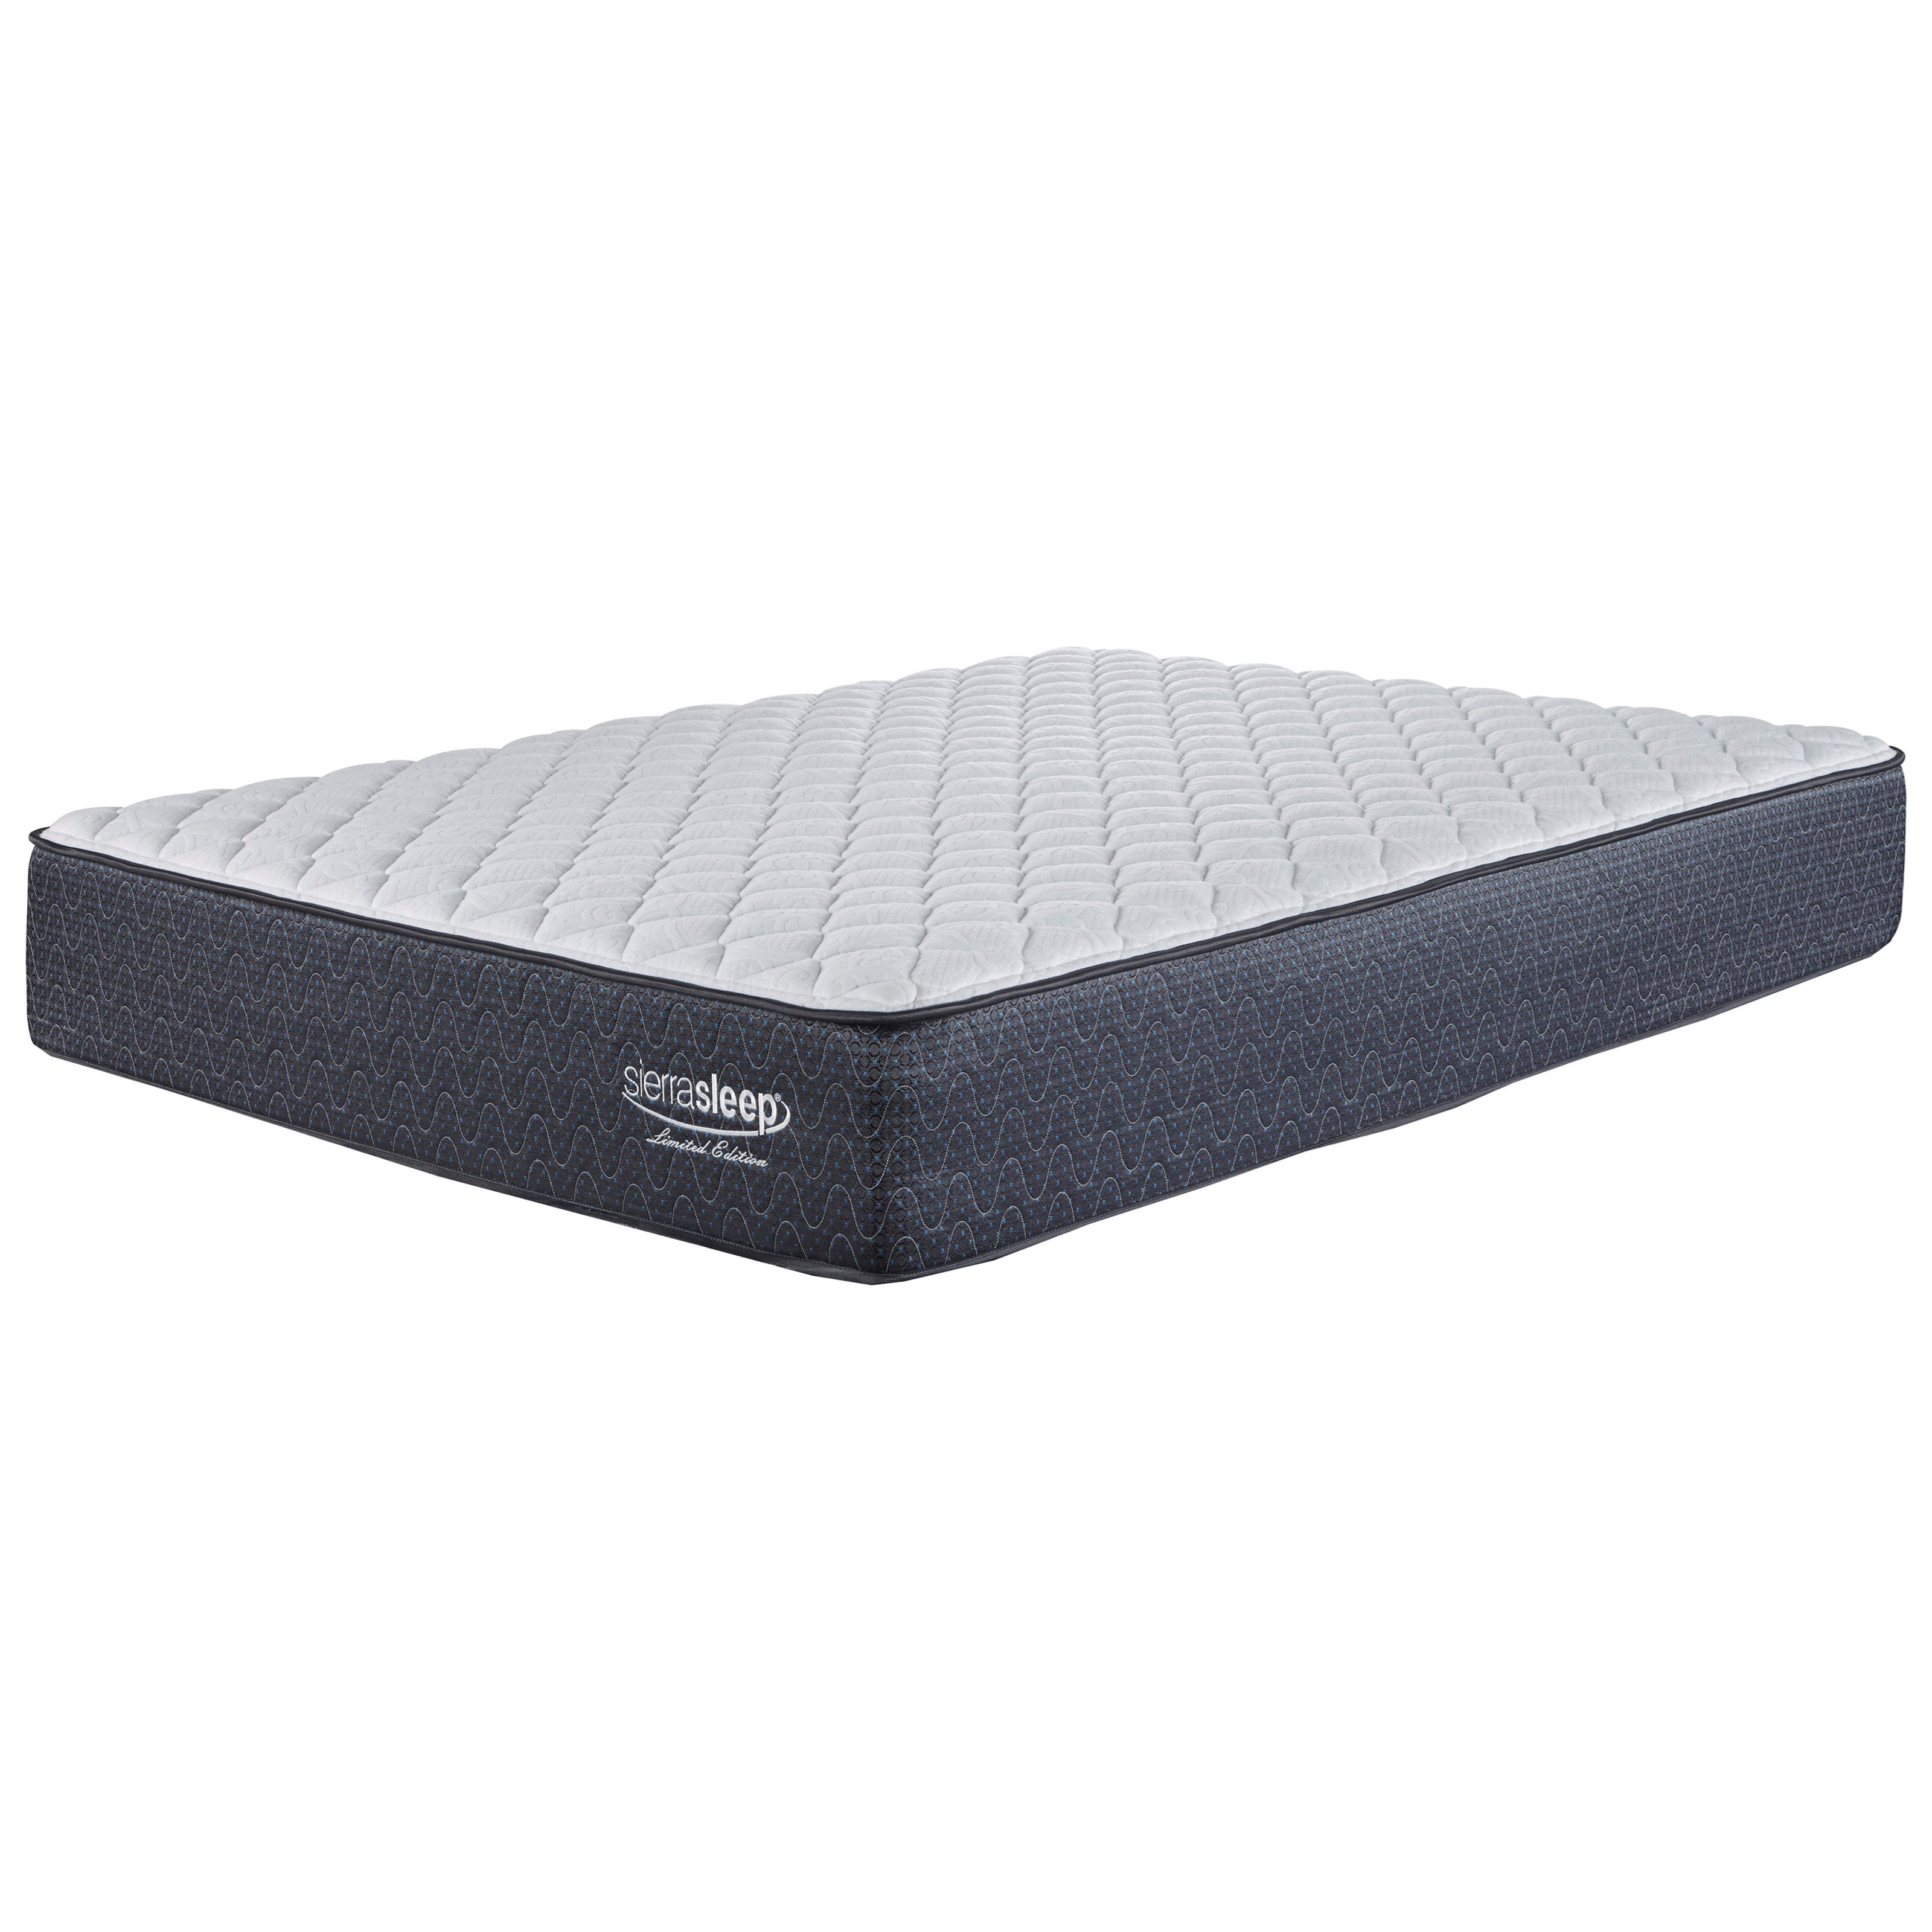 "Sierra Sleep Limited Edition Firm Twin 13"" Firm Mattress - Item Number: M79711"